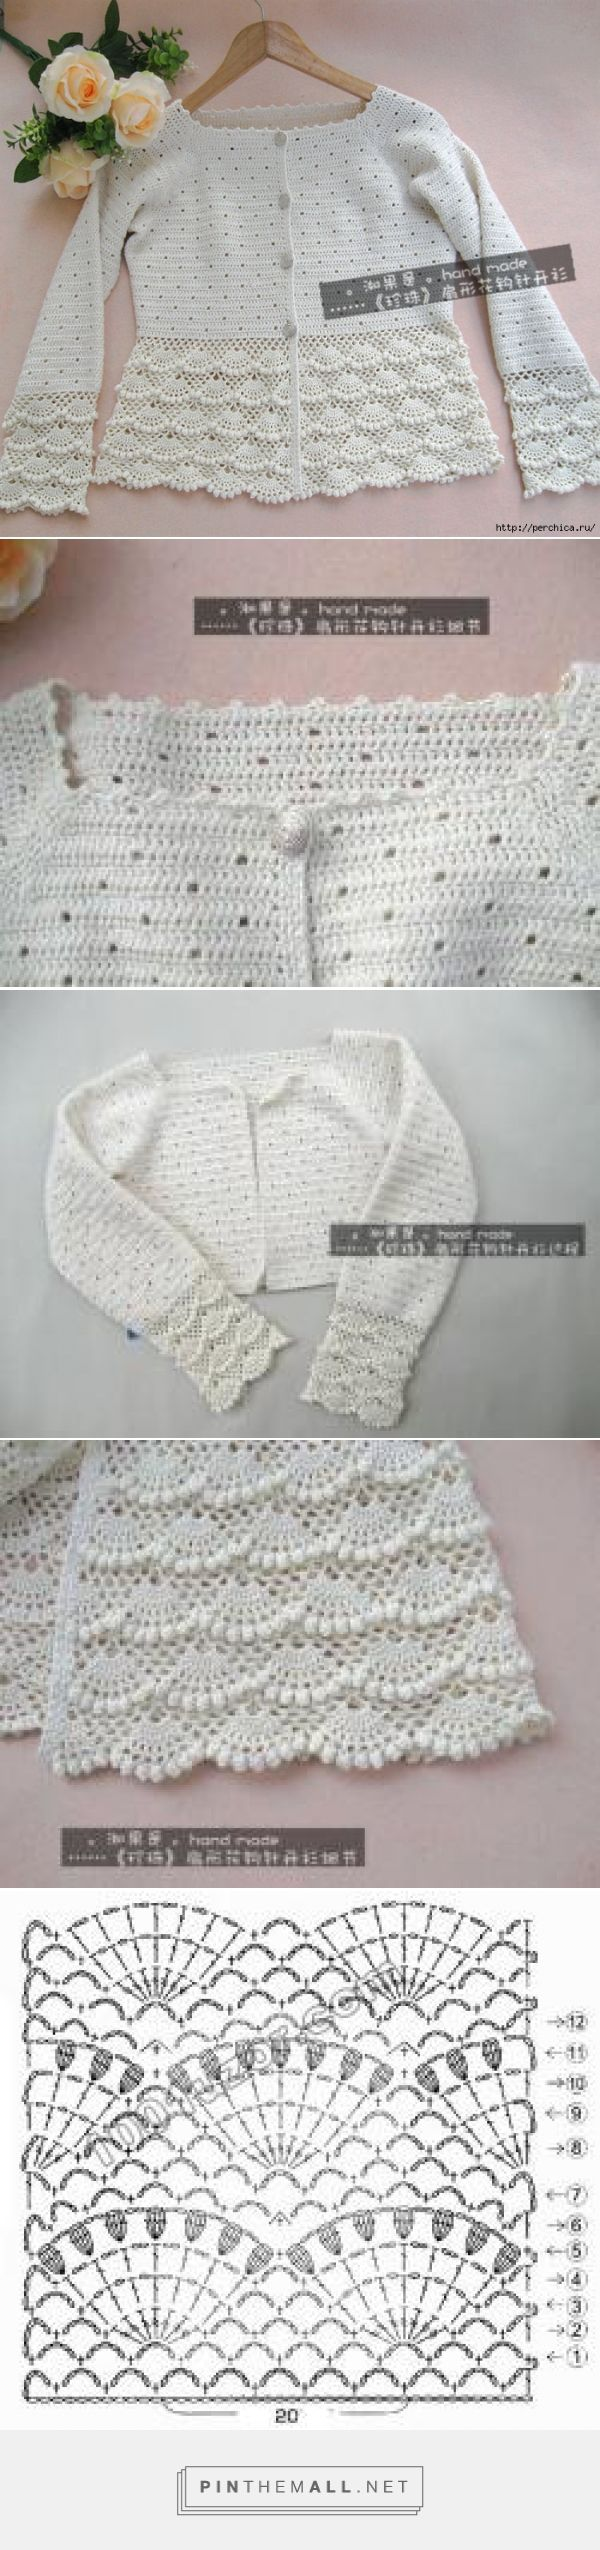 191 best crochet bebe images on Pinterest | Chrochet, Crochet girls ...